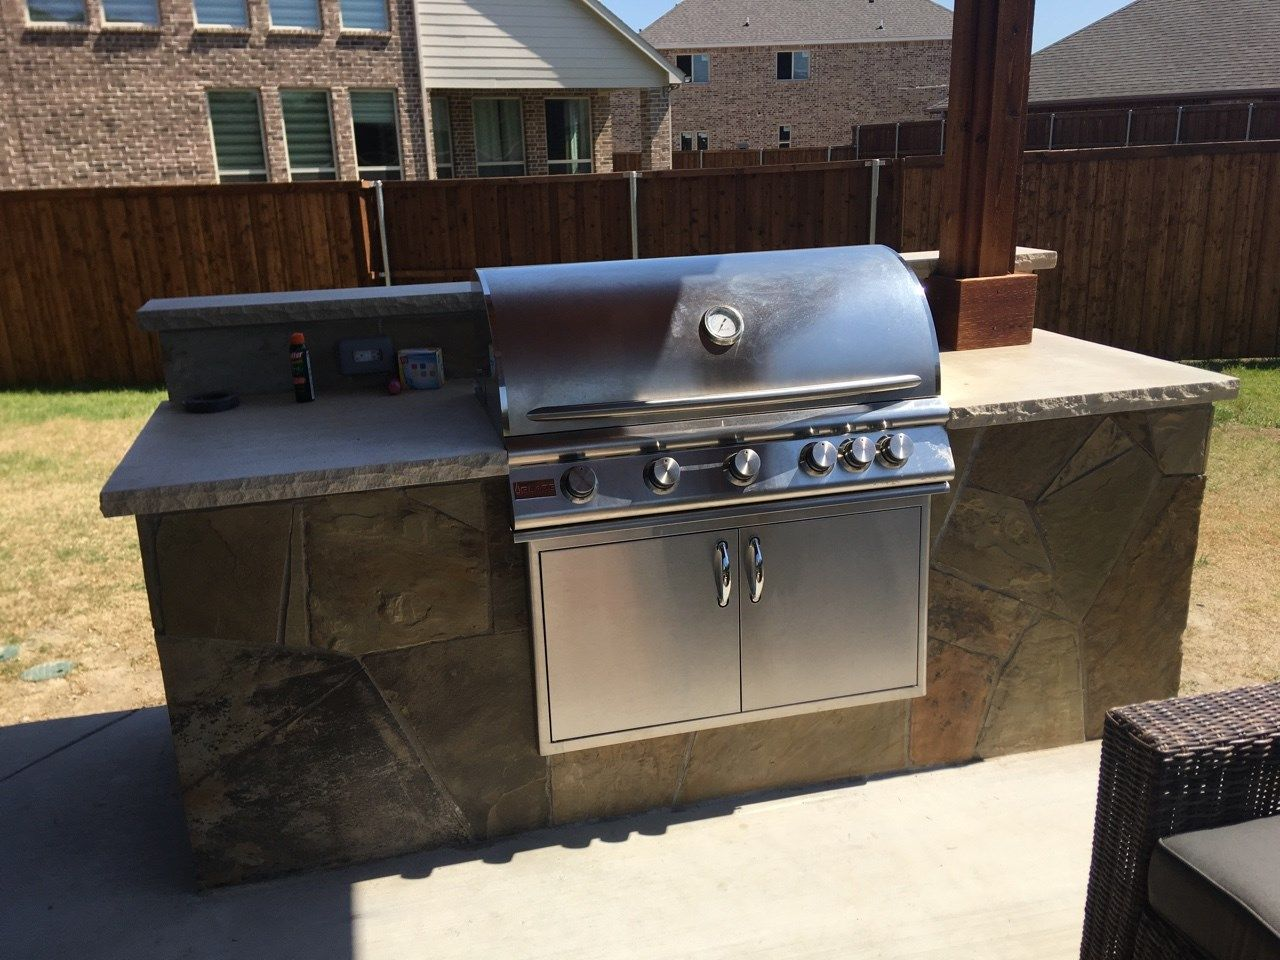 Pin By Beautiful Backyard Living On Stone Work In Frisco Plano Little Elm Mckinney Allen And All North Dallas Areas Backyard Living Beautiful Backyards Outdoor Kitchen